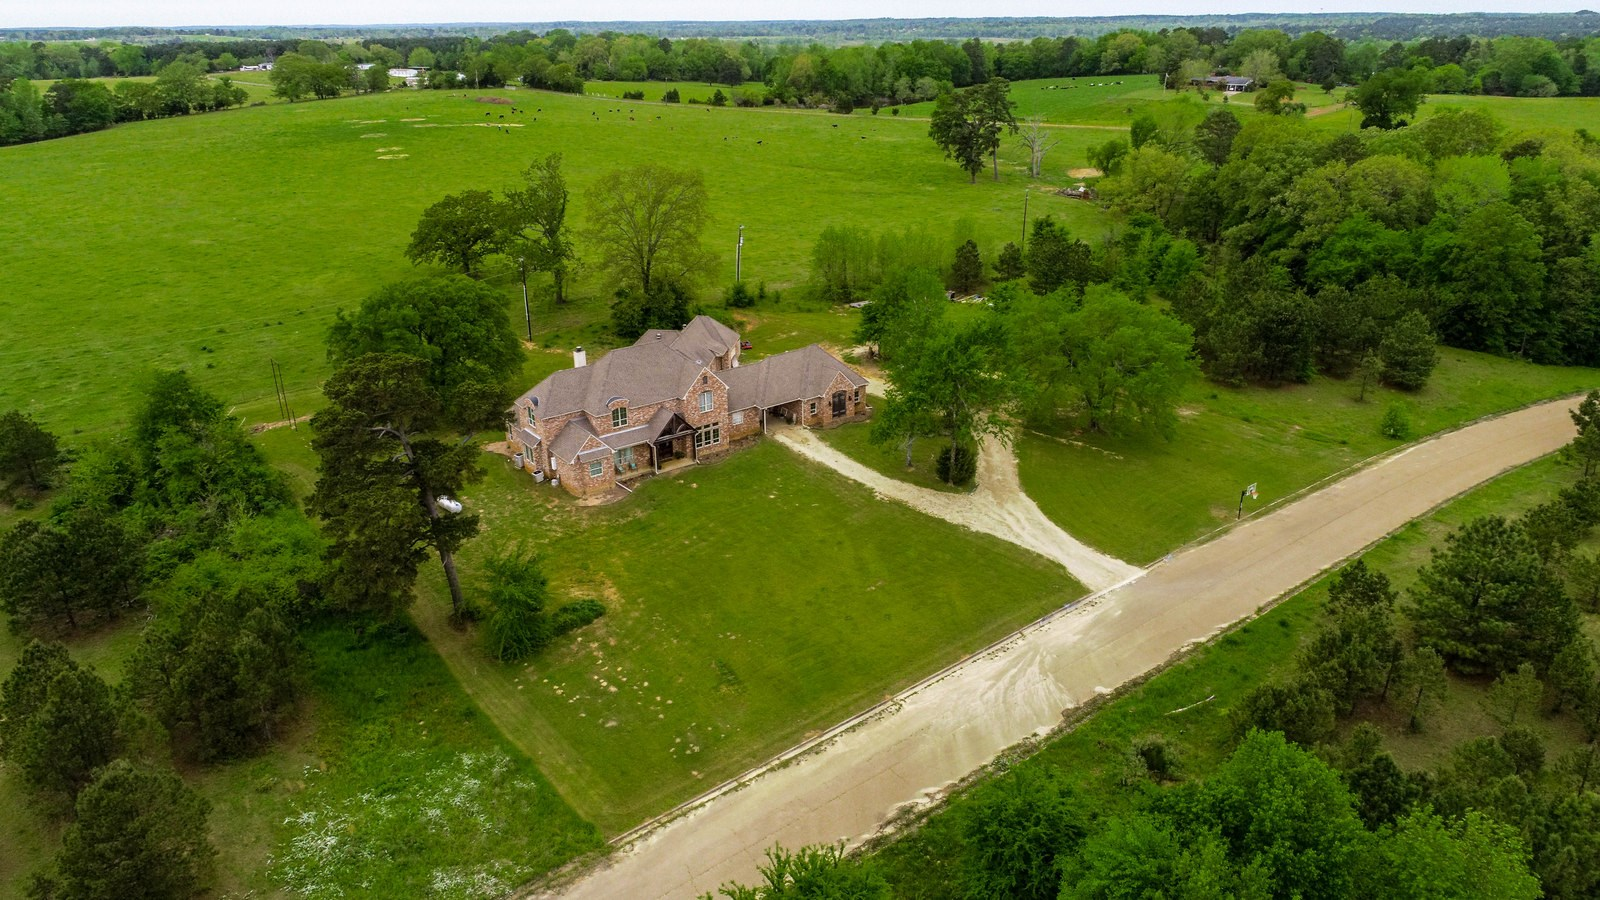 LARGE COUNTRY ESTATE - UPSHUR COUNTY - GILMER, TEXAS